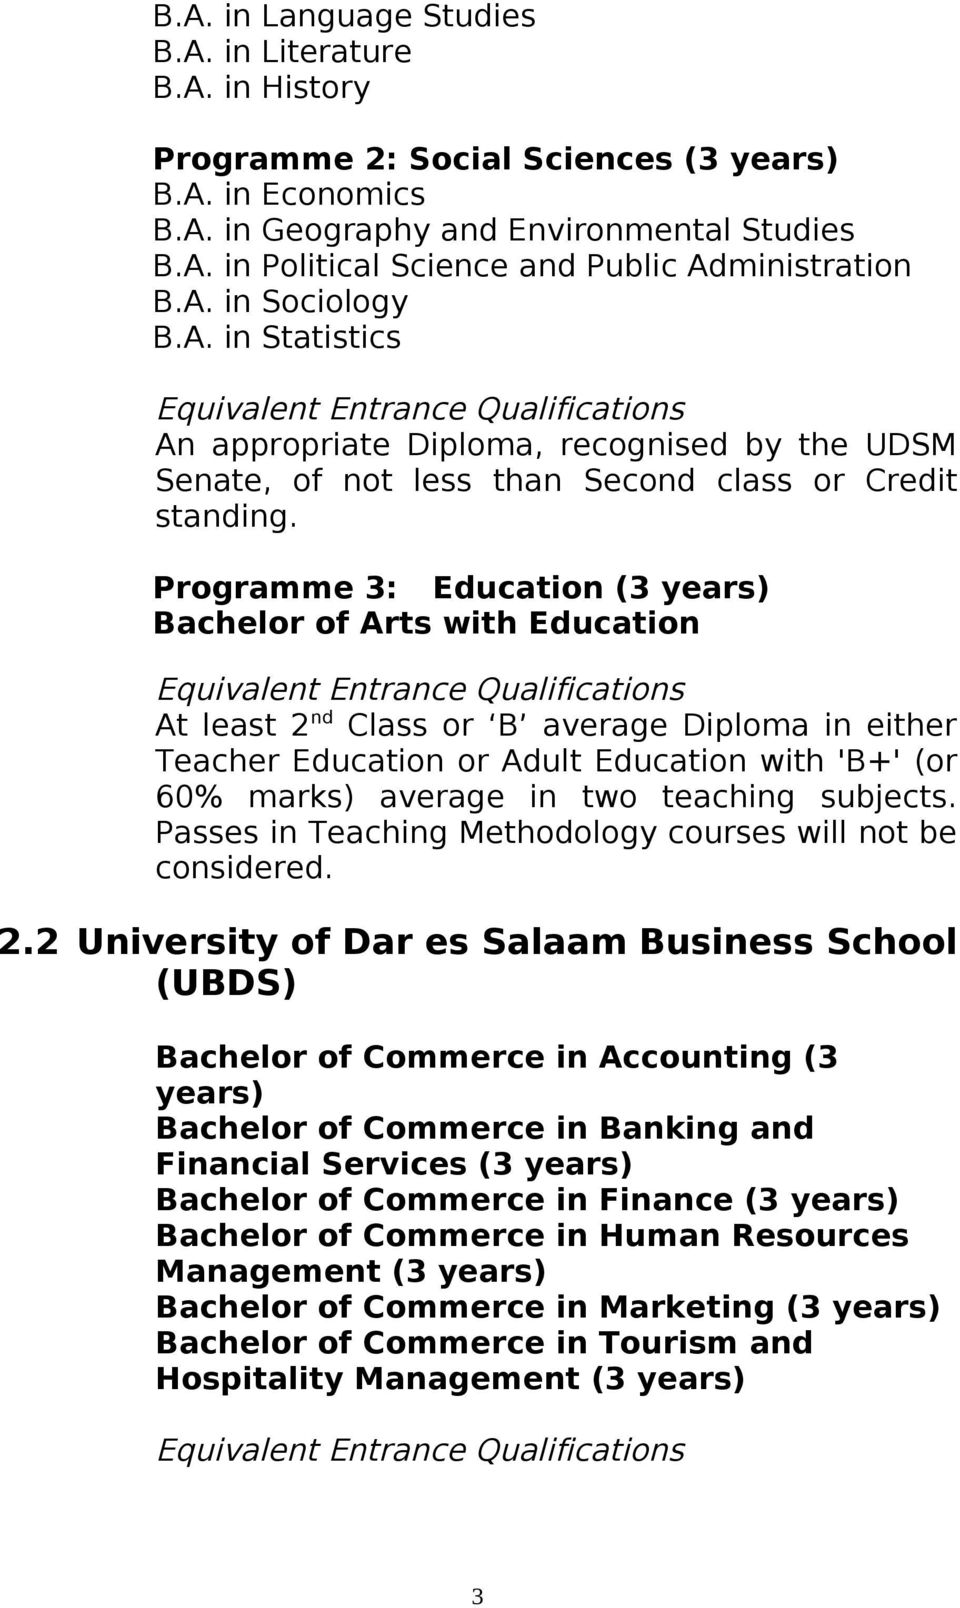 Programme 3: Education (3 years) Bachelor of Arts with Education At least 2 nd Class or B average Diploma in either Teacher Education or Adult Education with 'B+' (or 60% marks) average in two